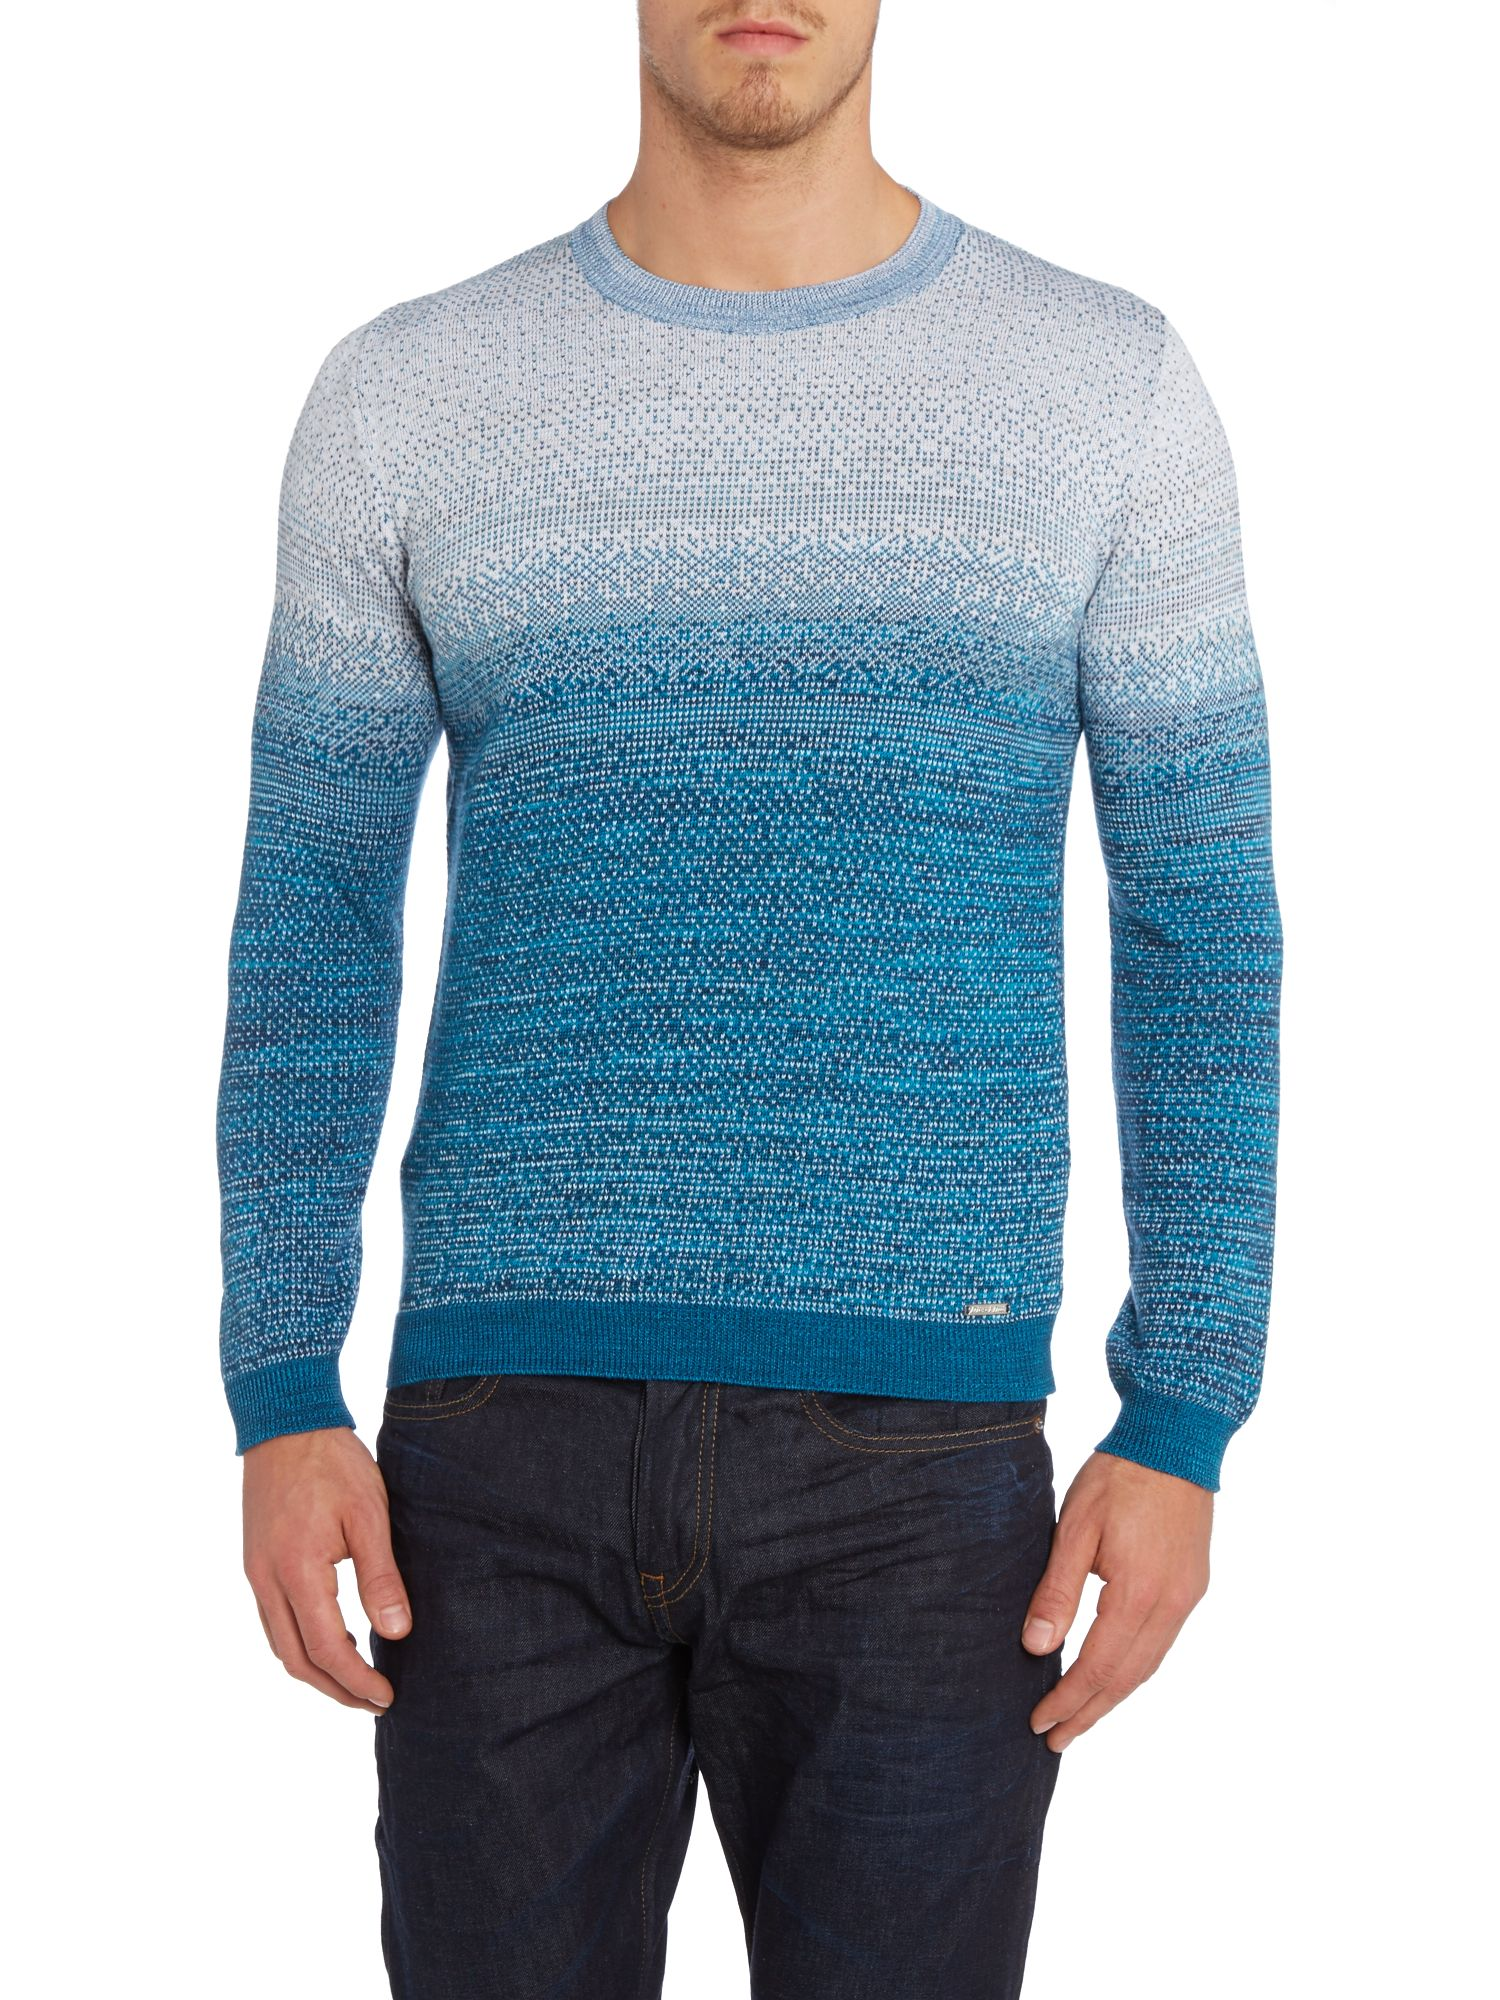 Knitted crew neck ombre